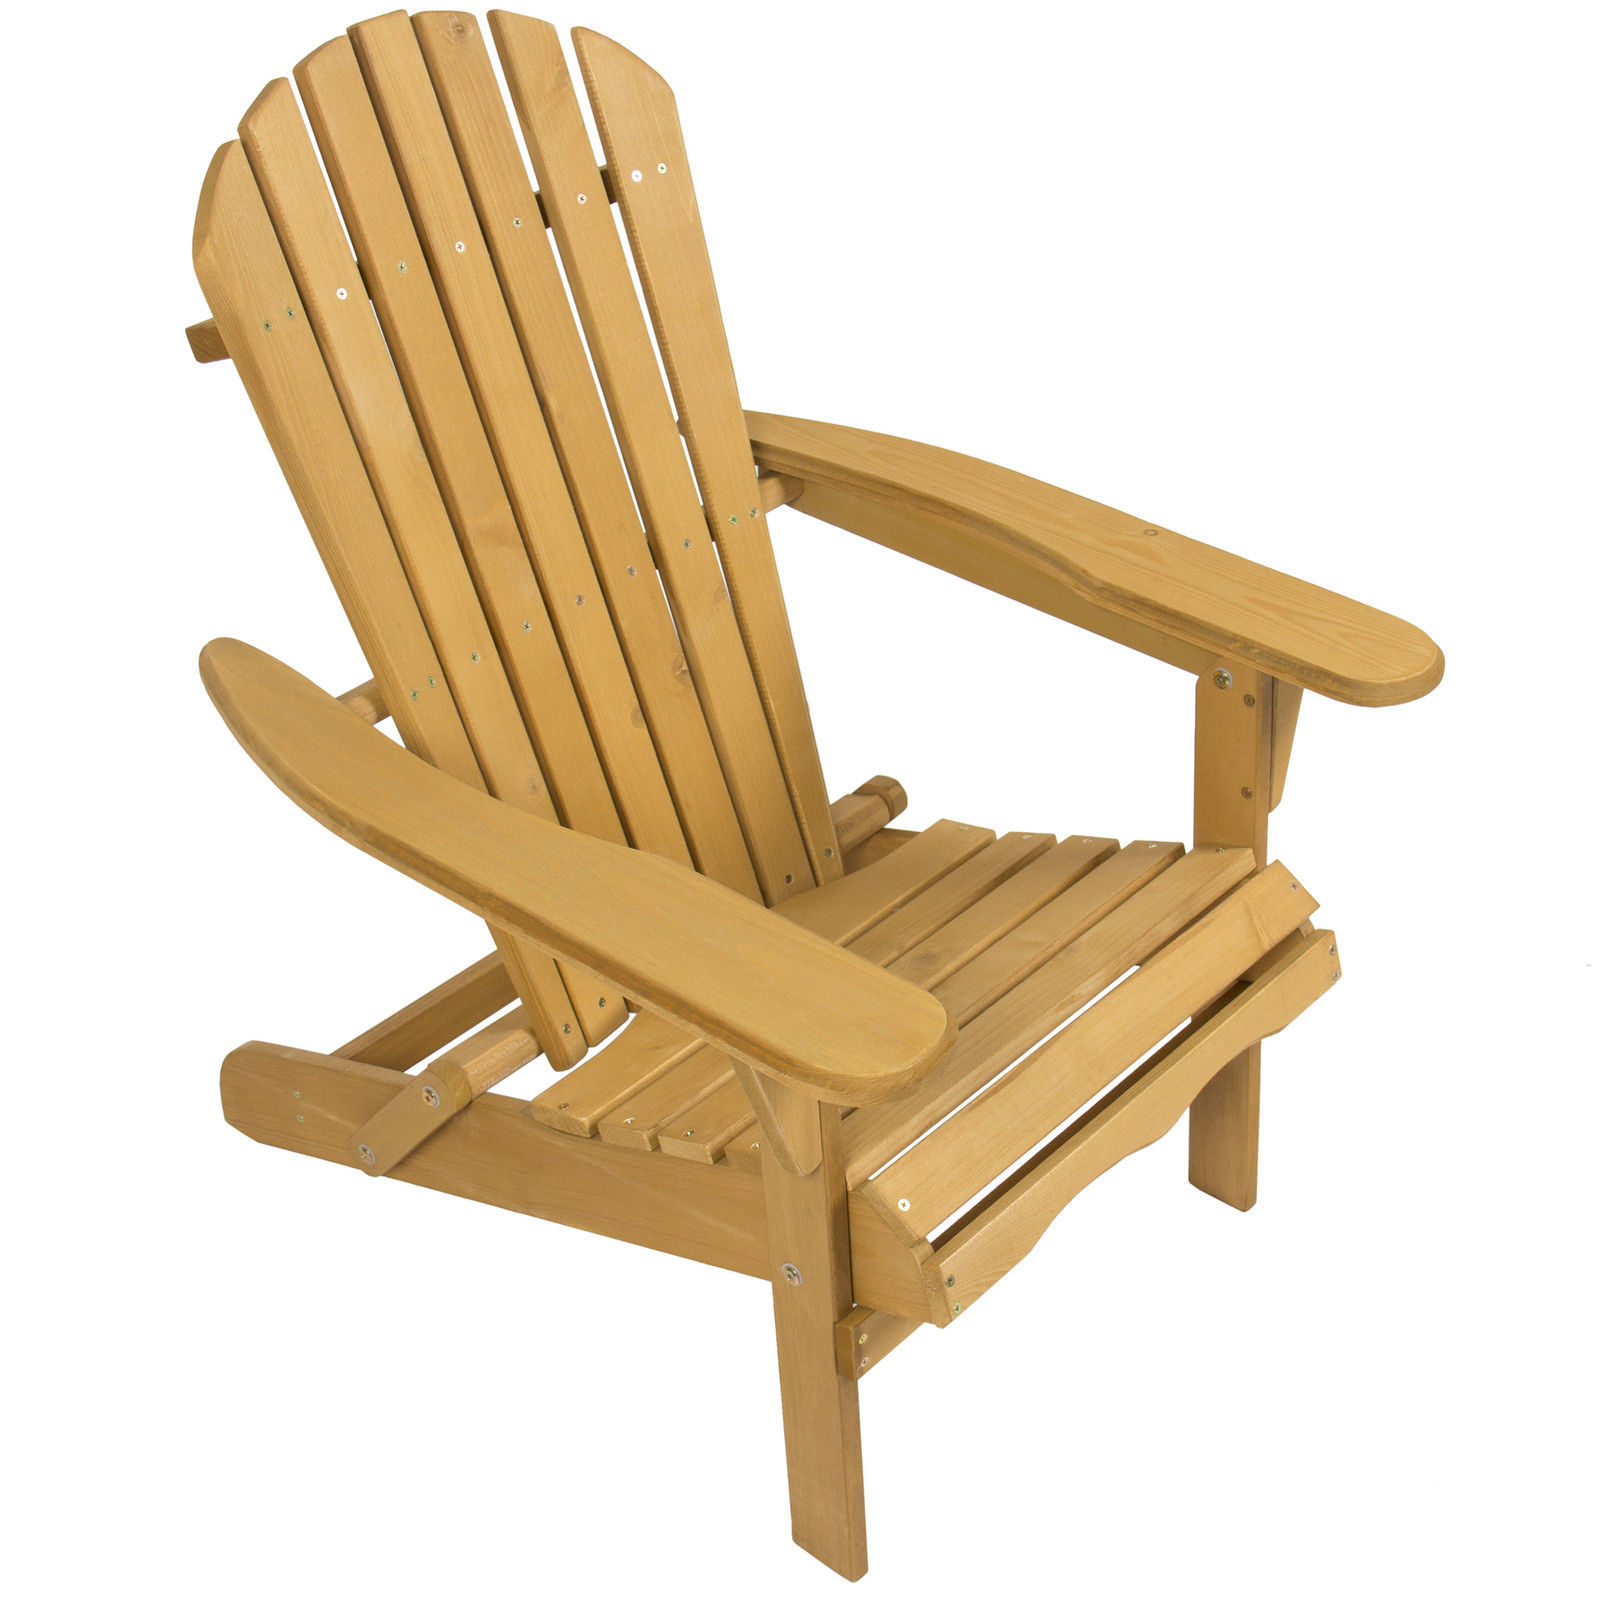 Outdoor Adirondack Wood Chair Foldable Patio Lawn Deck Garden Furniture Chairs